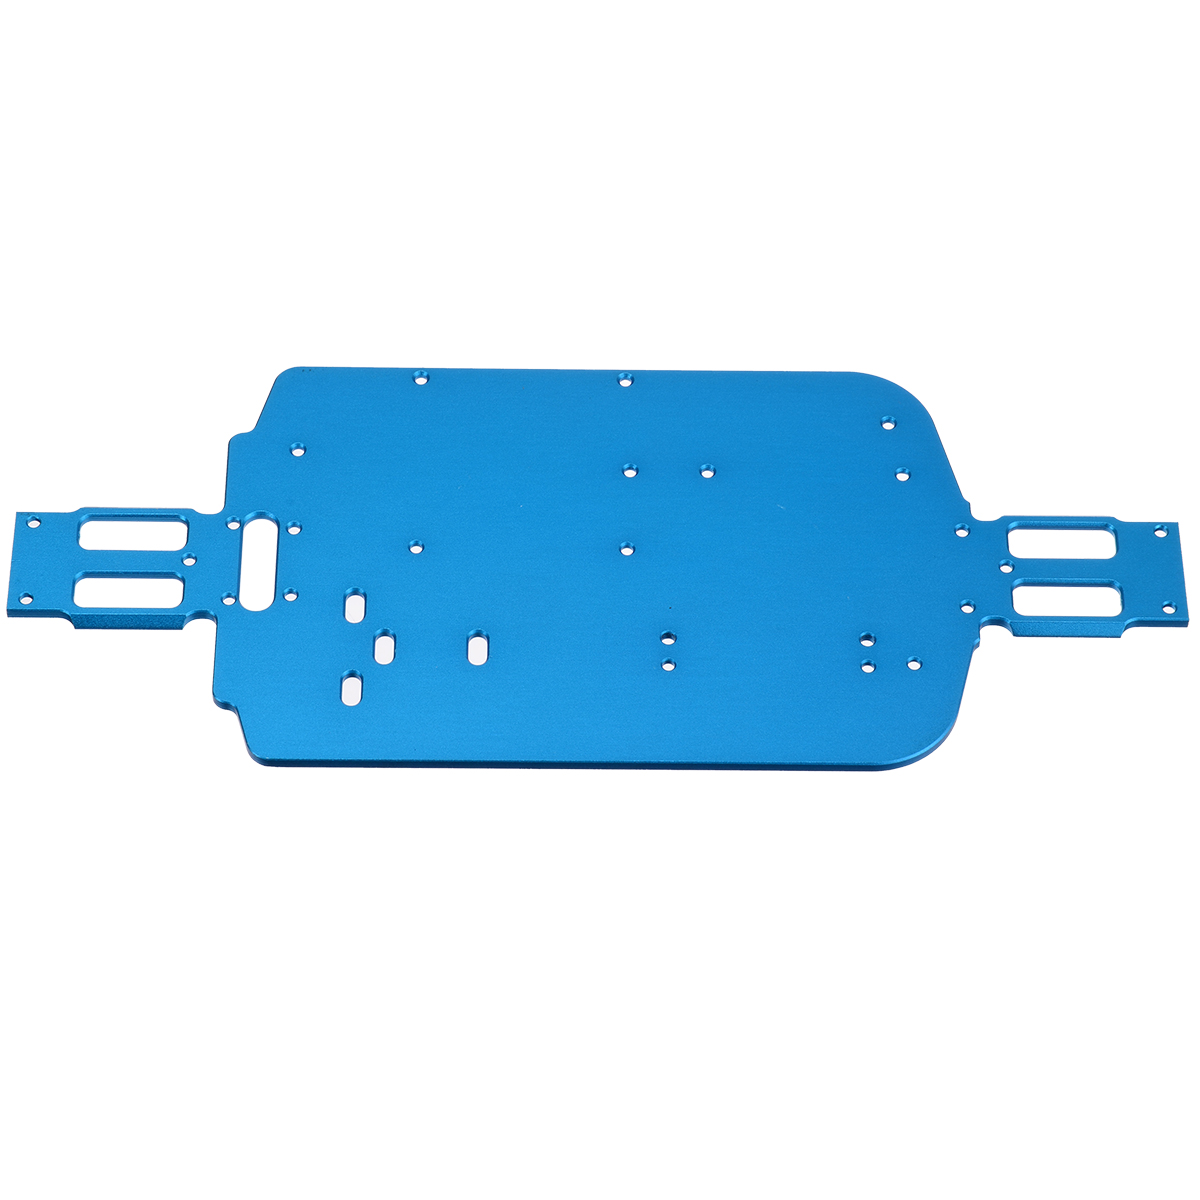 Image 3 - 1 Set High Speed Car Metal Chassis Upgrade Metal Chassis For Wltoys 1/18 A949 A959 B A969 A979 K929 RC Car-in Parts & Accessories from Toys & Hobbies